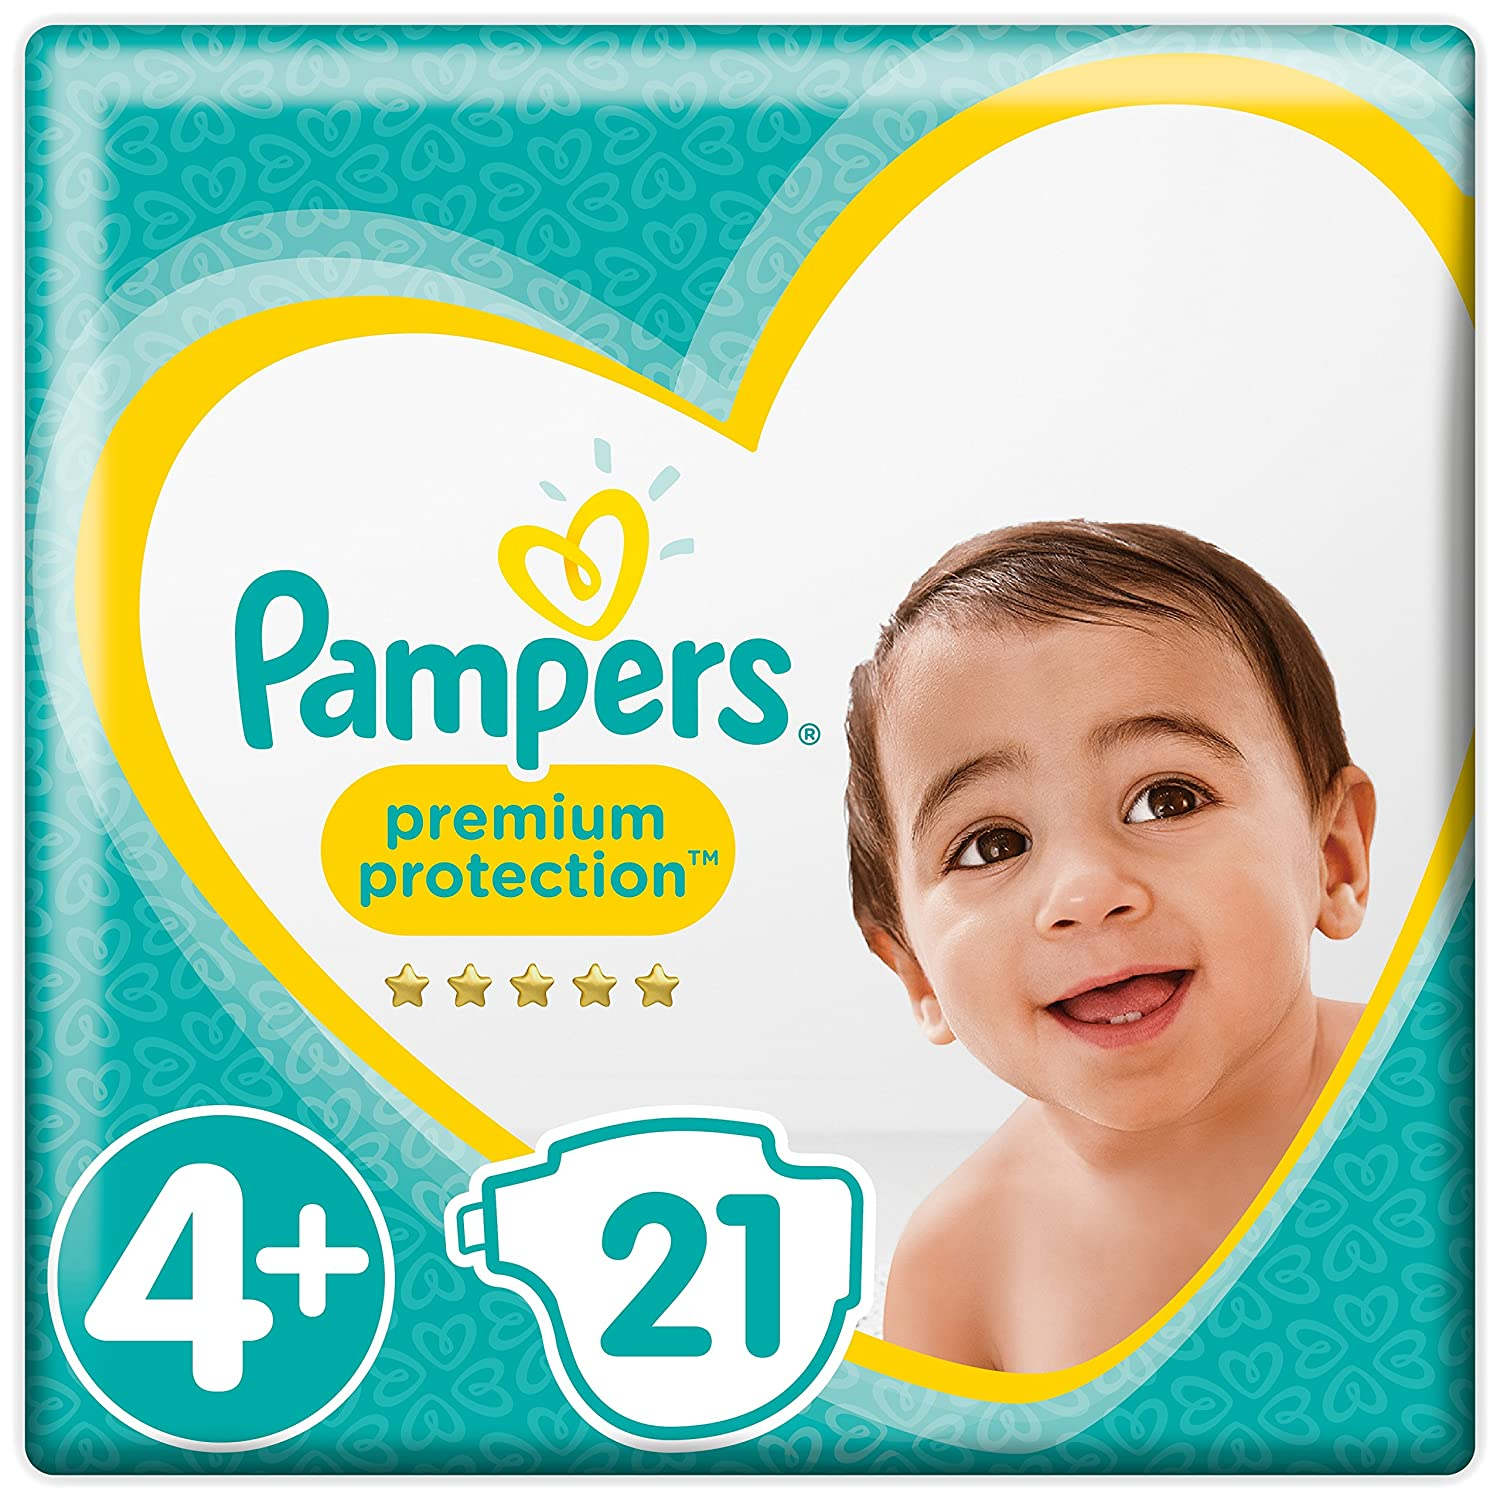 Pampers Premium Protection Windeln, Gr. 4+ Maxi Plus (10-15 kg), 1er Pack (1 x 21 Stück) 1er Pack (1 x 21 Stück) Procter & Gamble 8001090299529